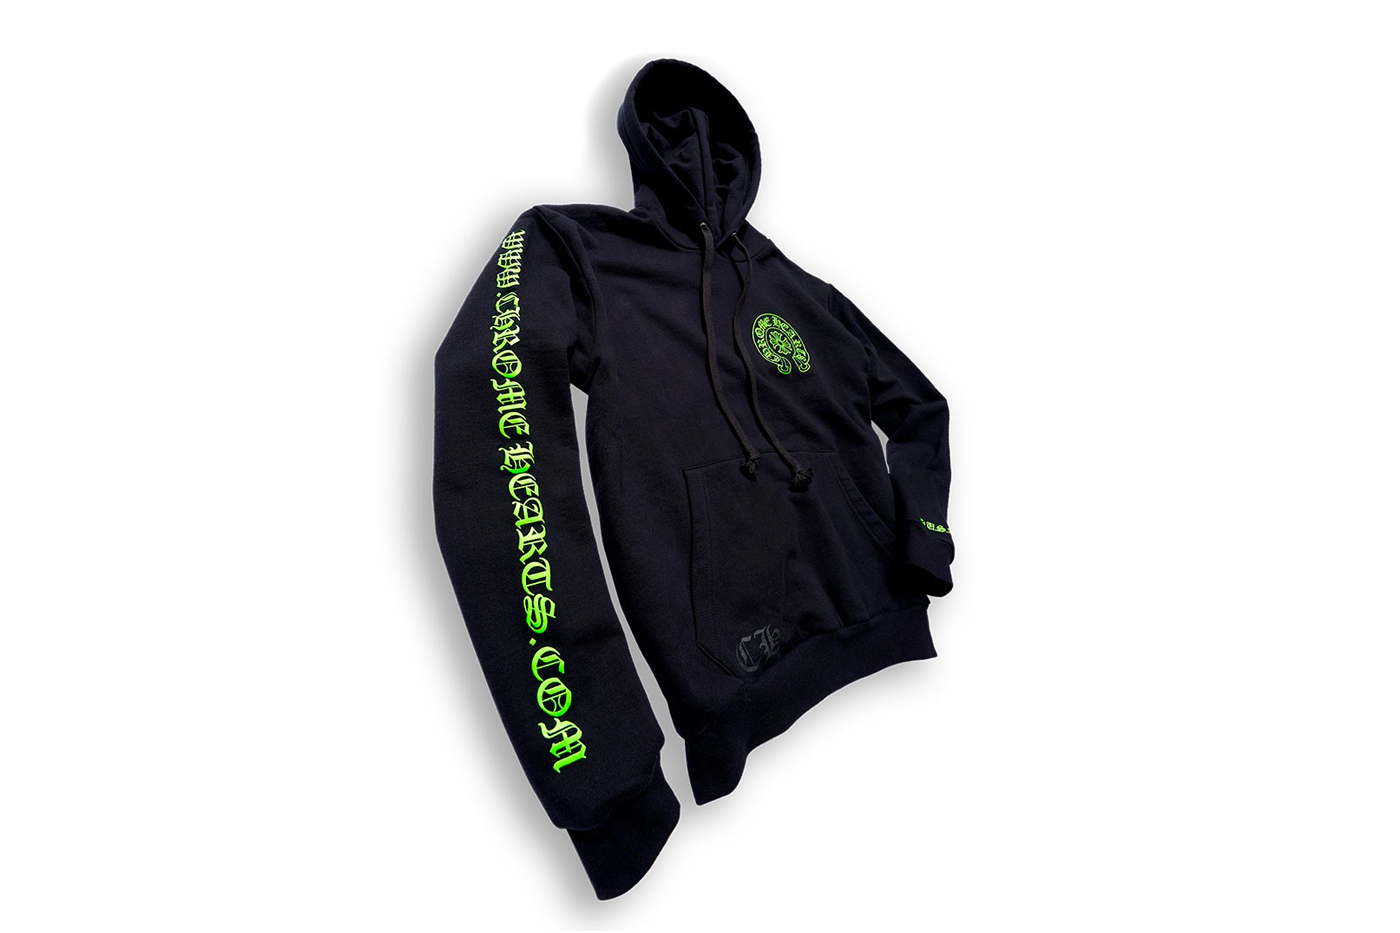 Chrome Hearts Online Hoodie Release